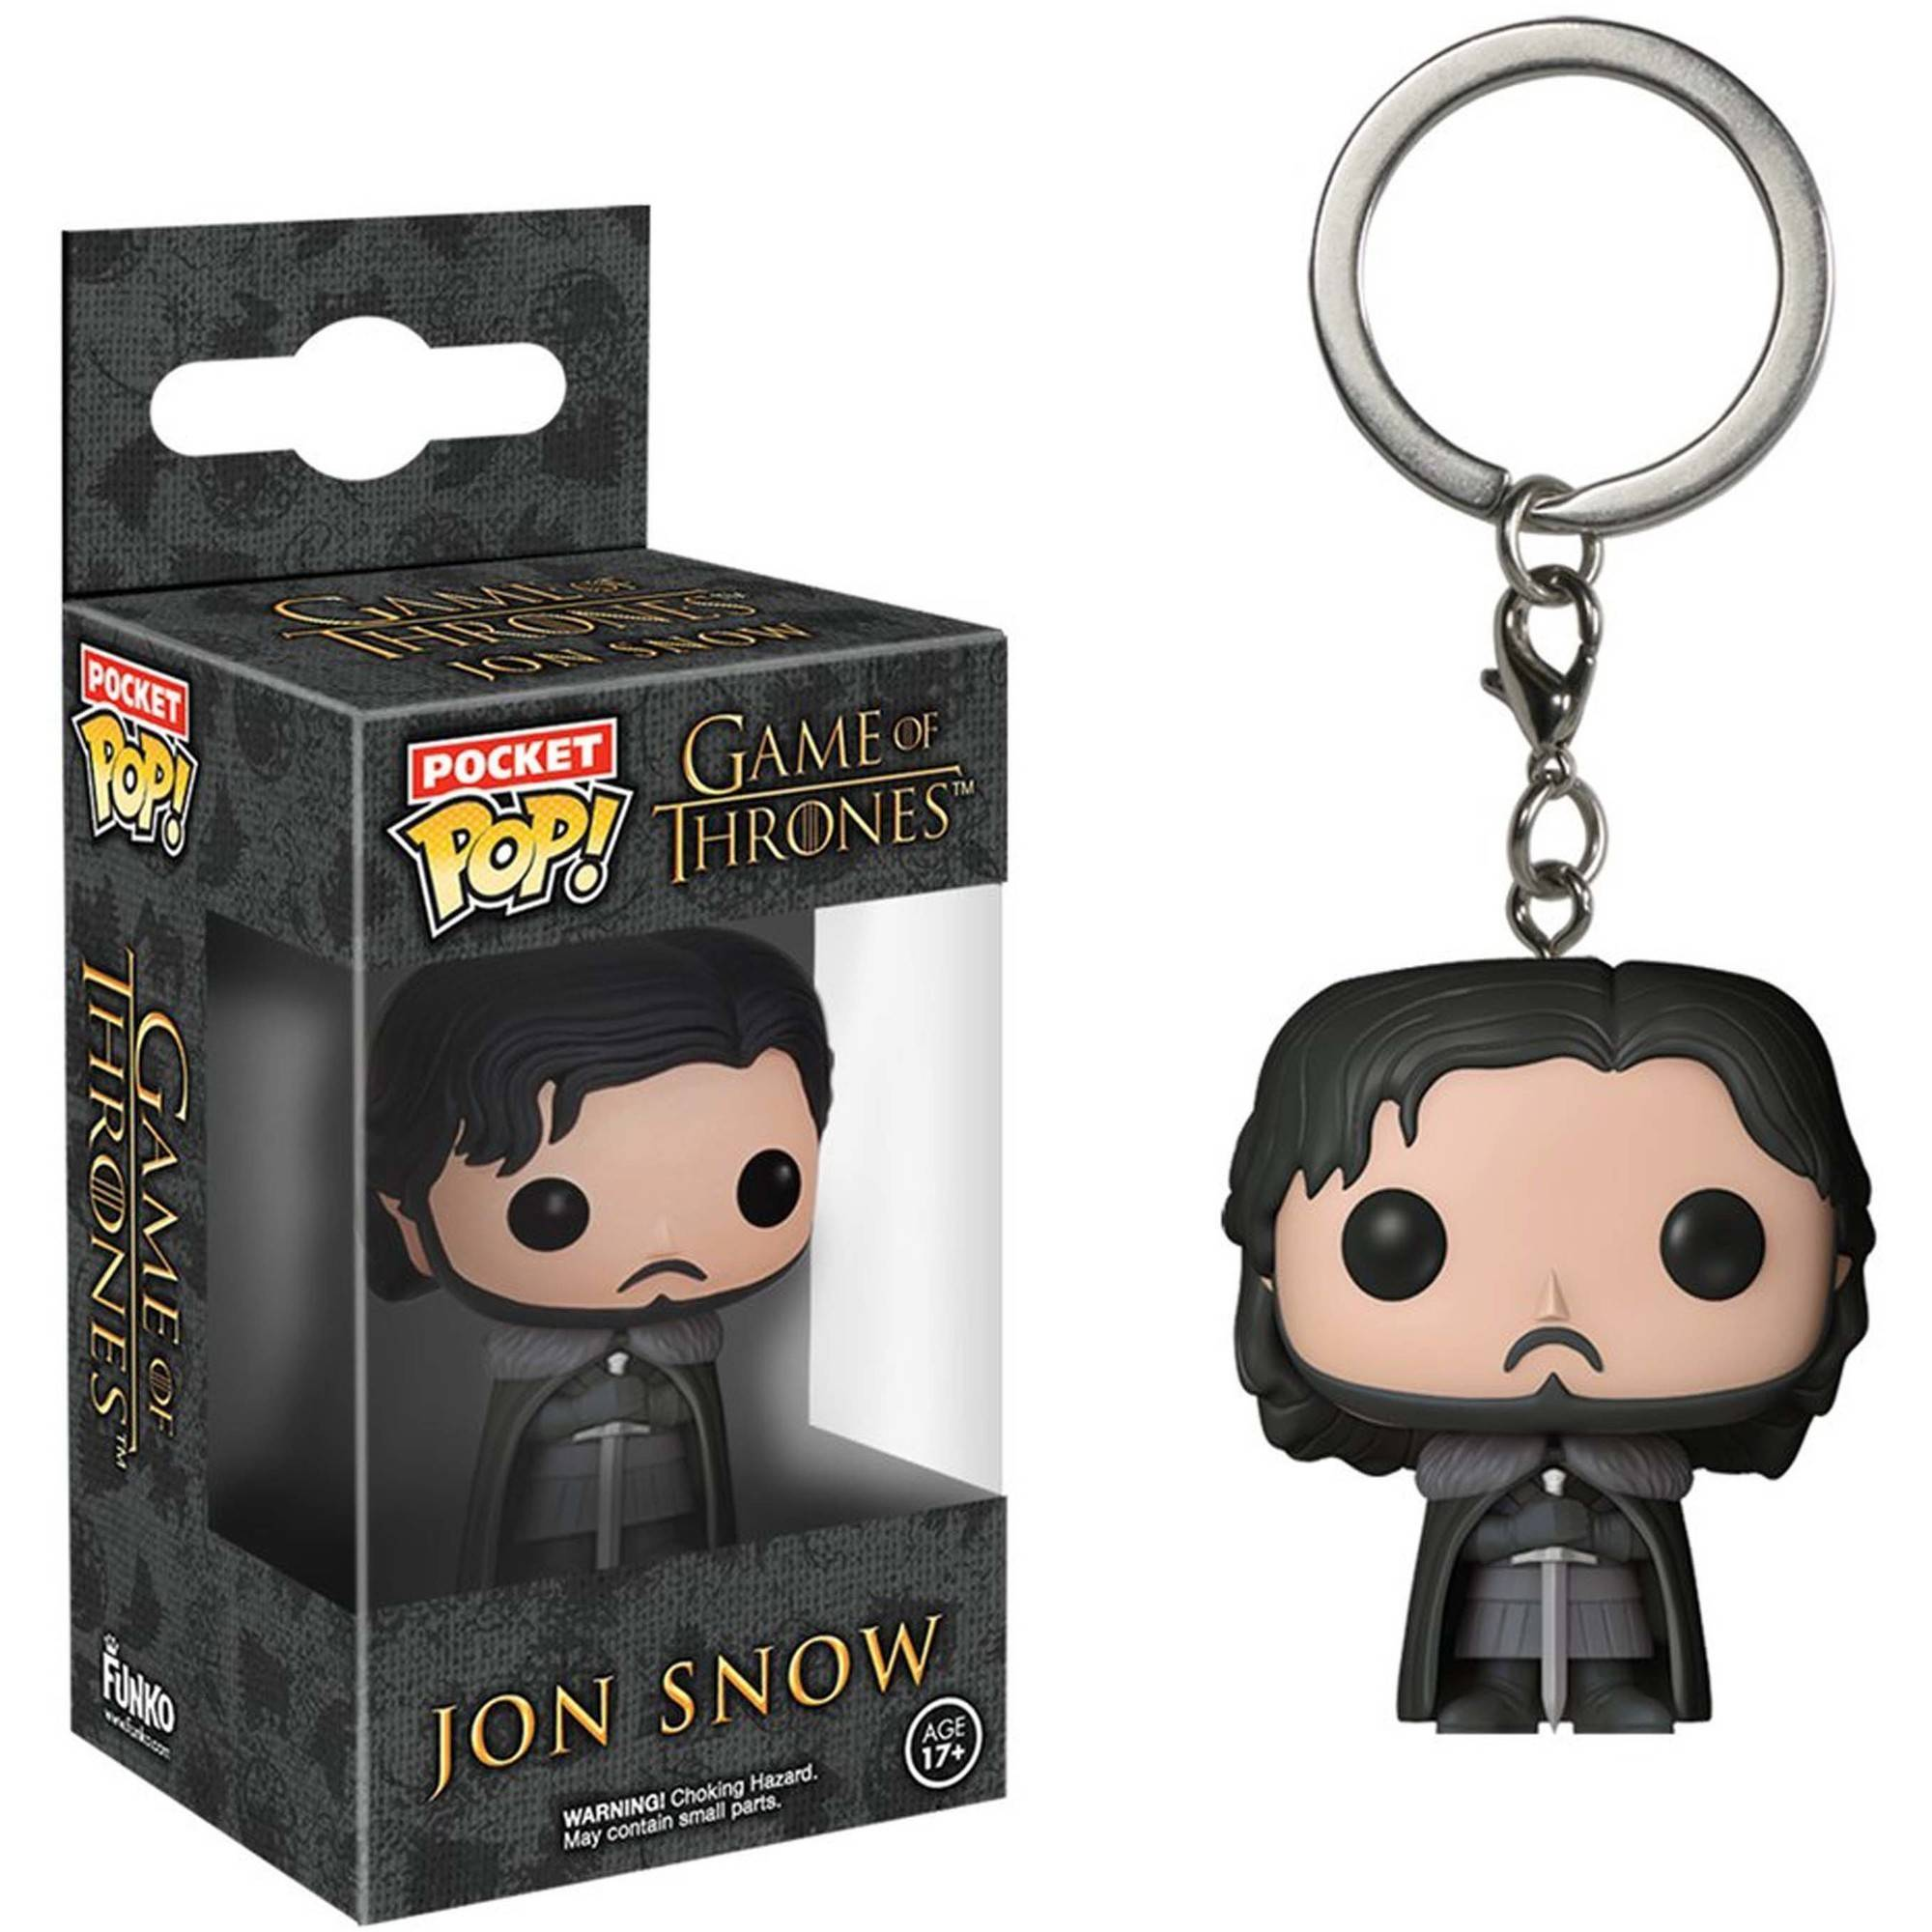 Funko Pocket Pop! Keychain Game of Thrones Pocket Jon Snow